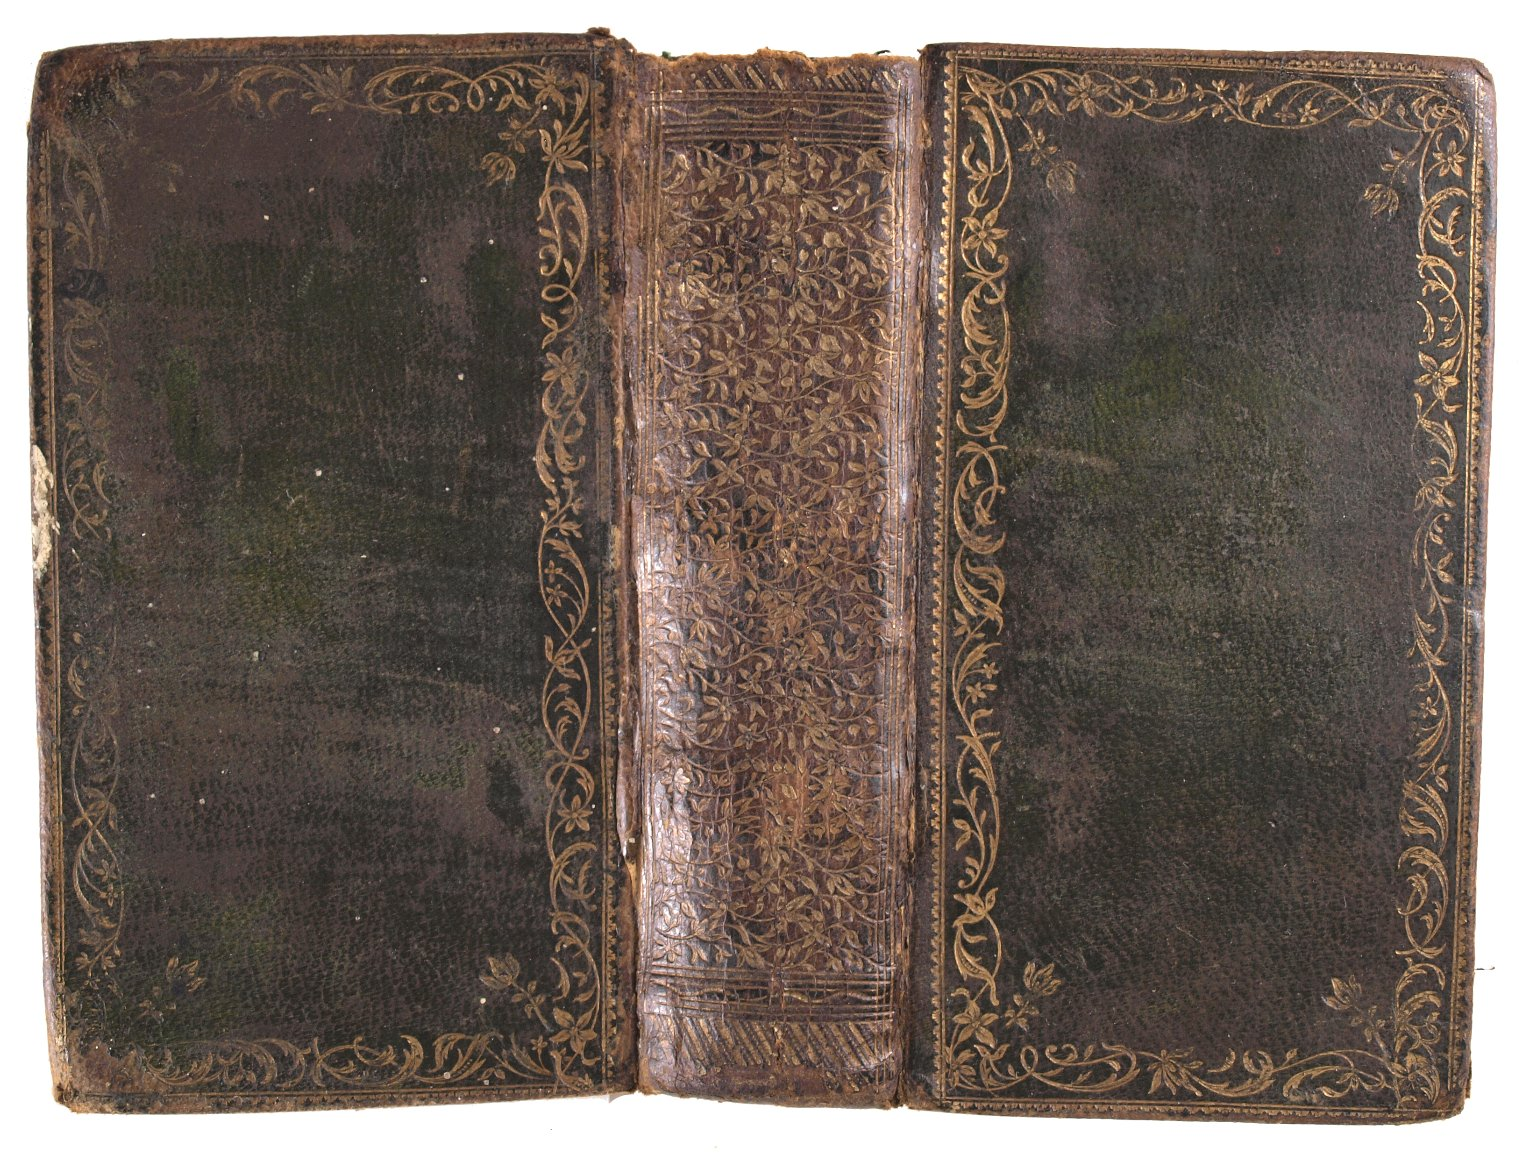 Open covers, STC 2062.2.